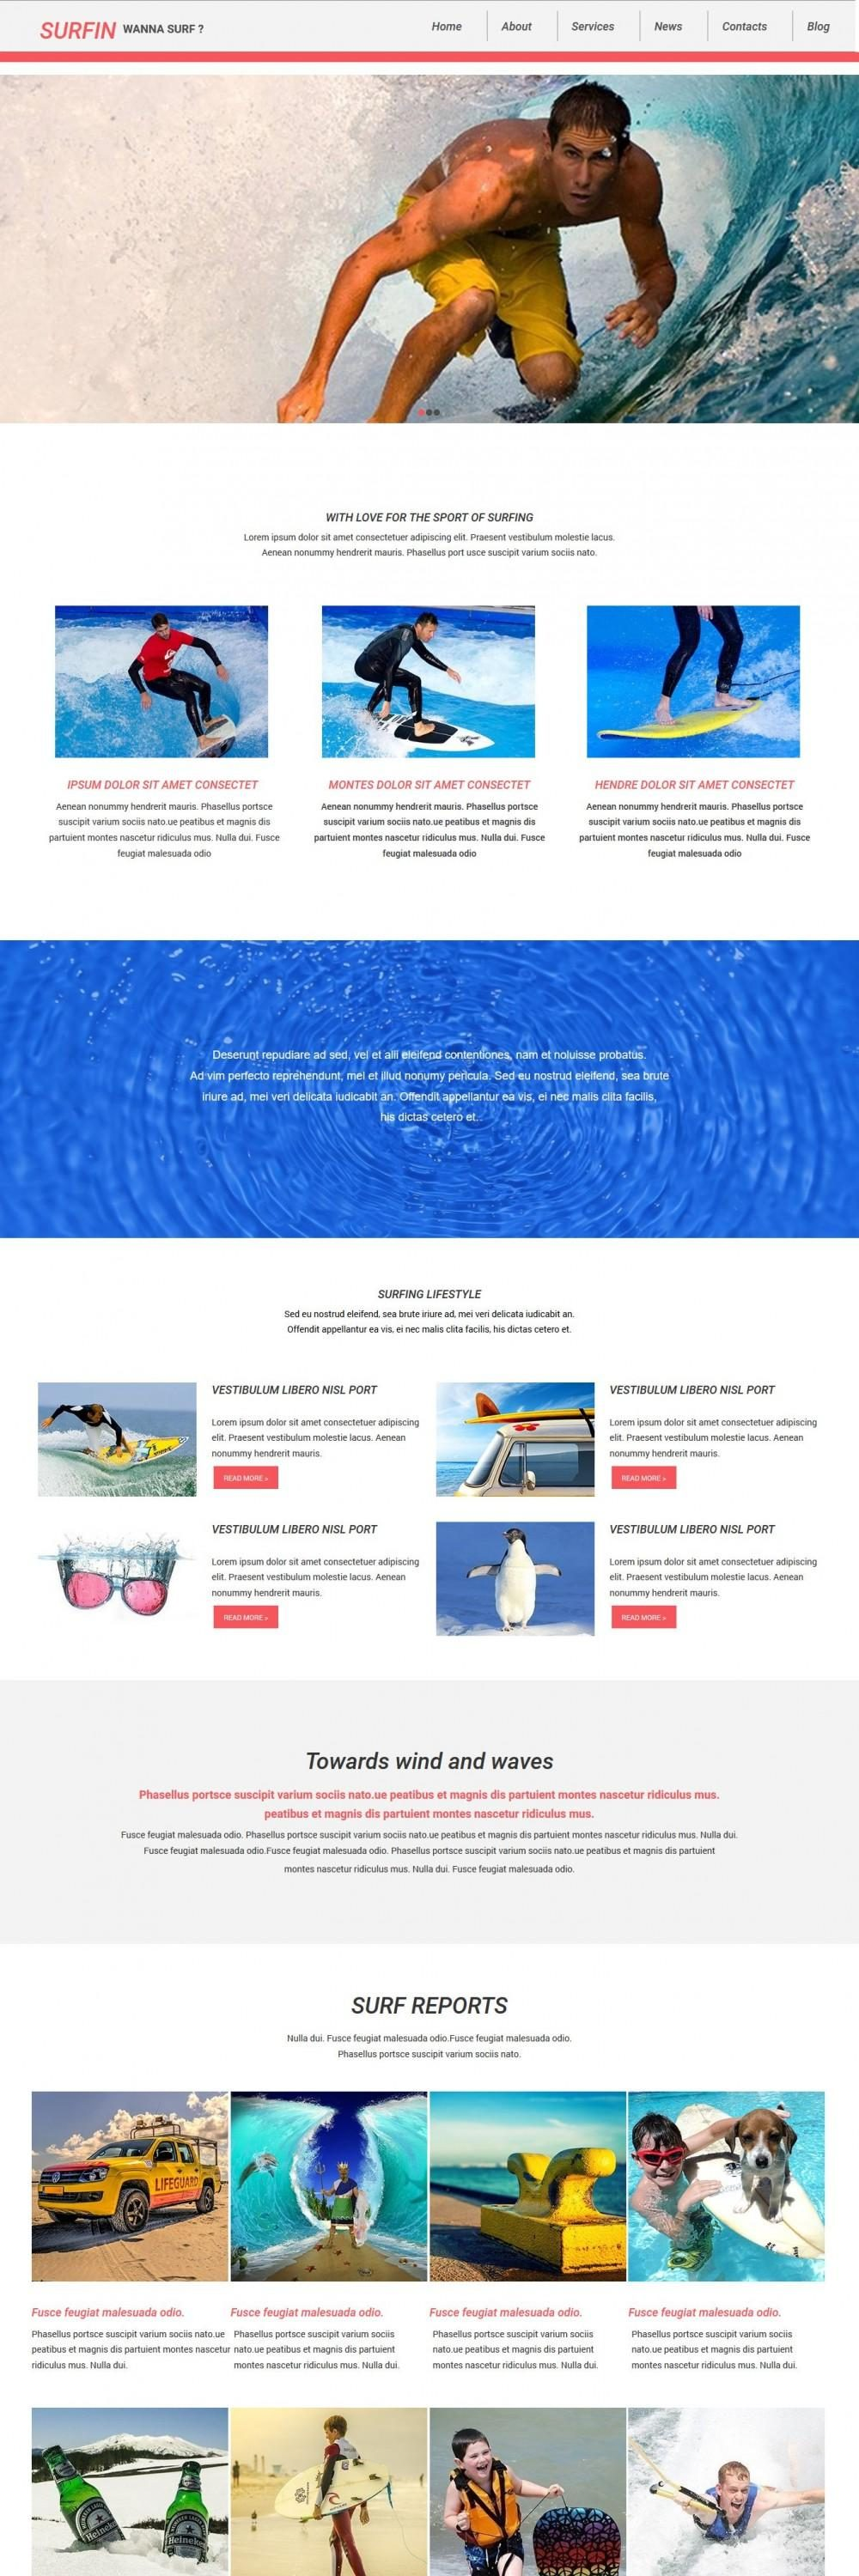 Surfin - Joomla Template for Surfin Club/Sports